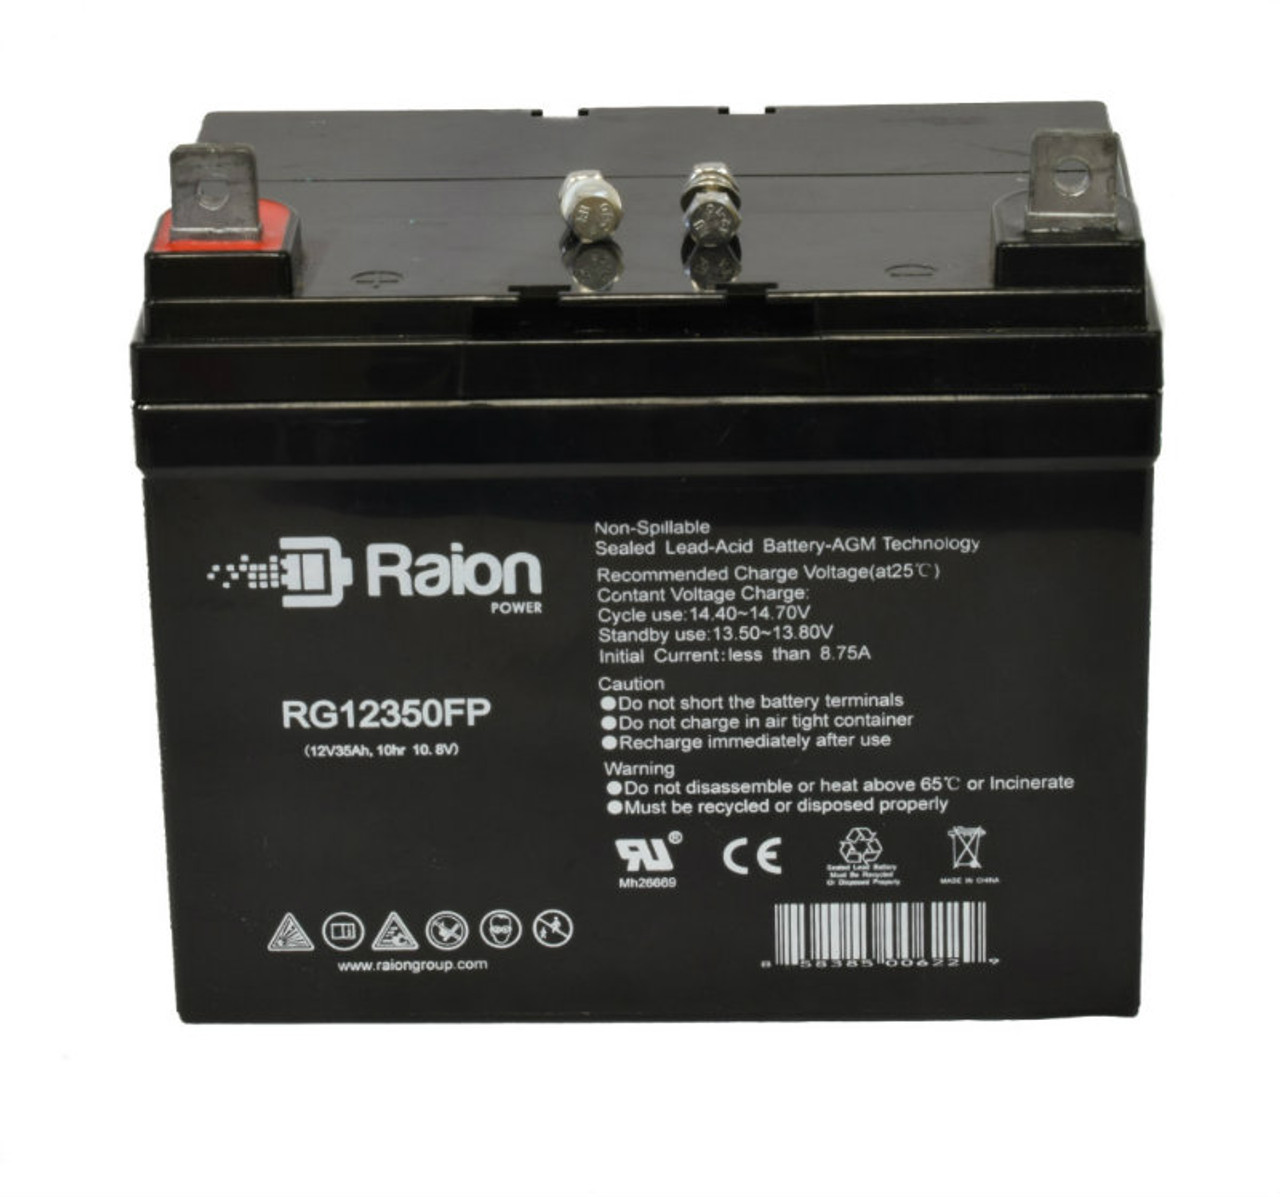 RG12350FP Sealed Lead Acid Battery Pack For Leisure Lift AGM1234T Mobility Scooter